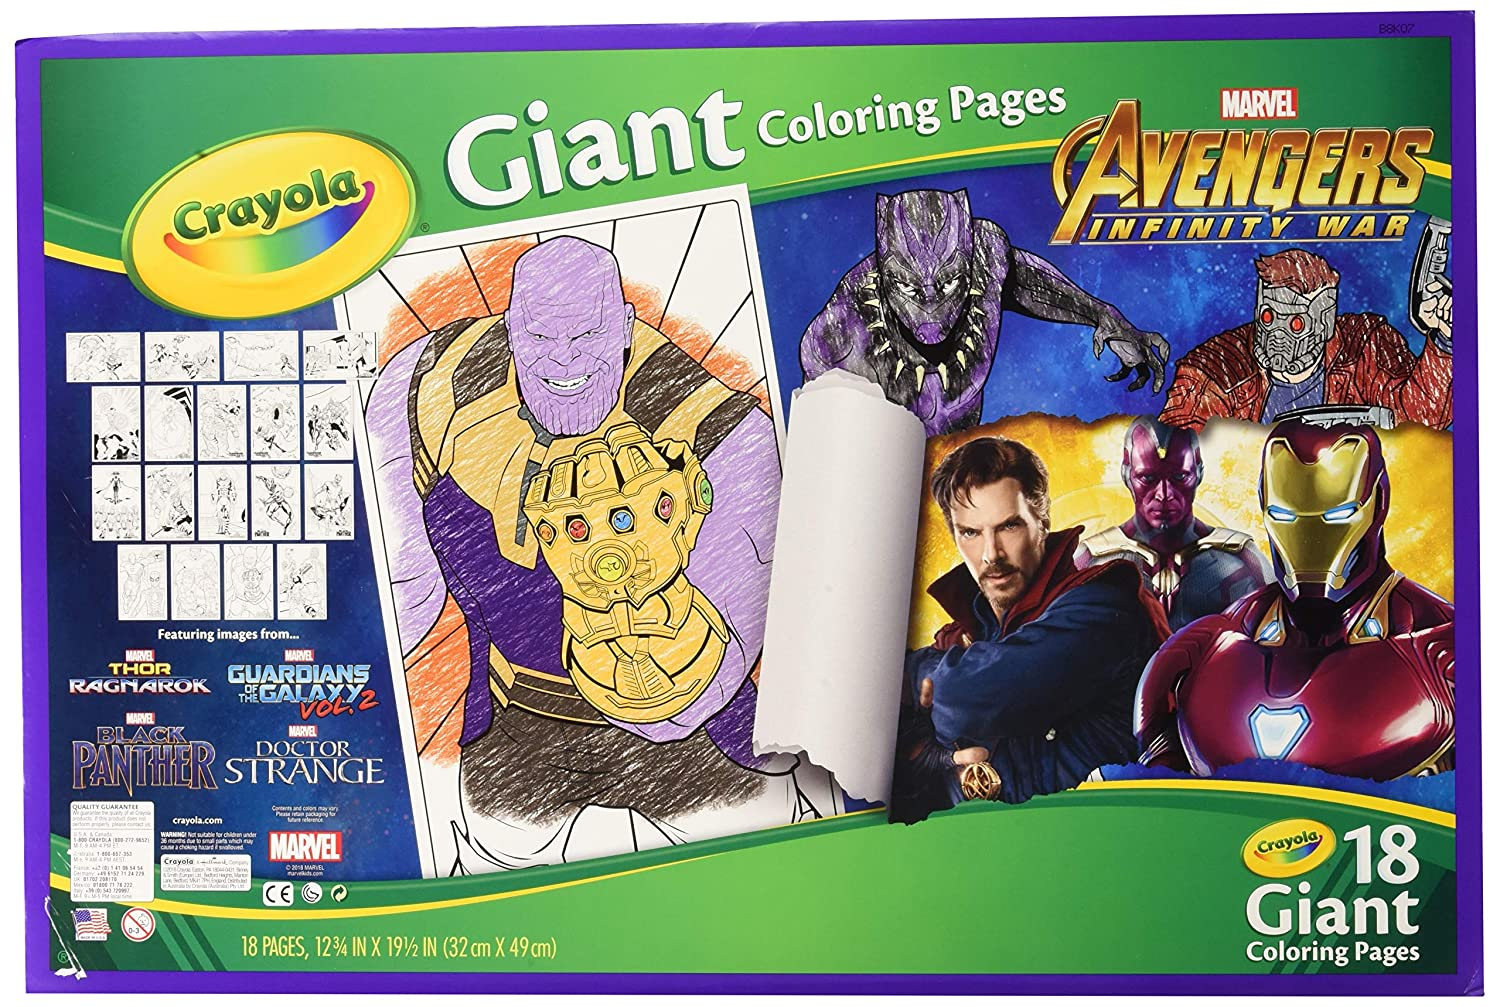 Crayola Avengers Infinity War Giant Coloring Pages Gift For Kids 18 Pages Styles May Vary